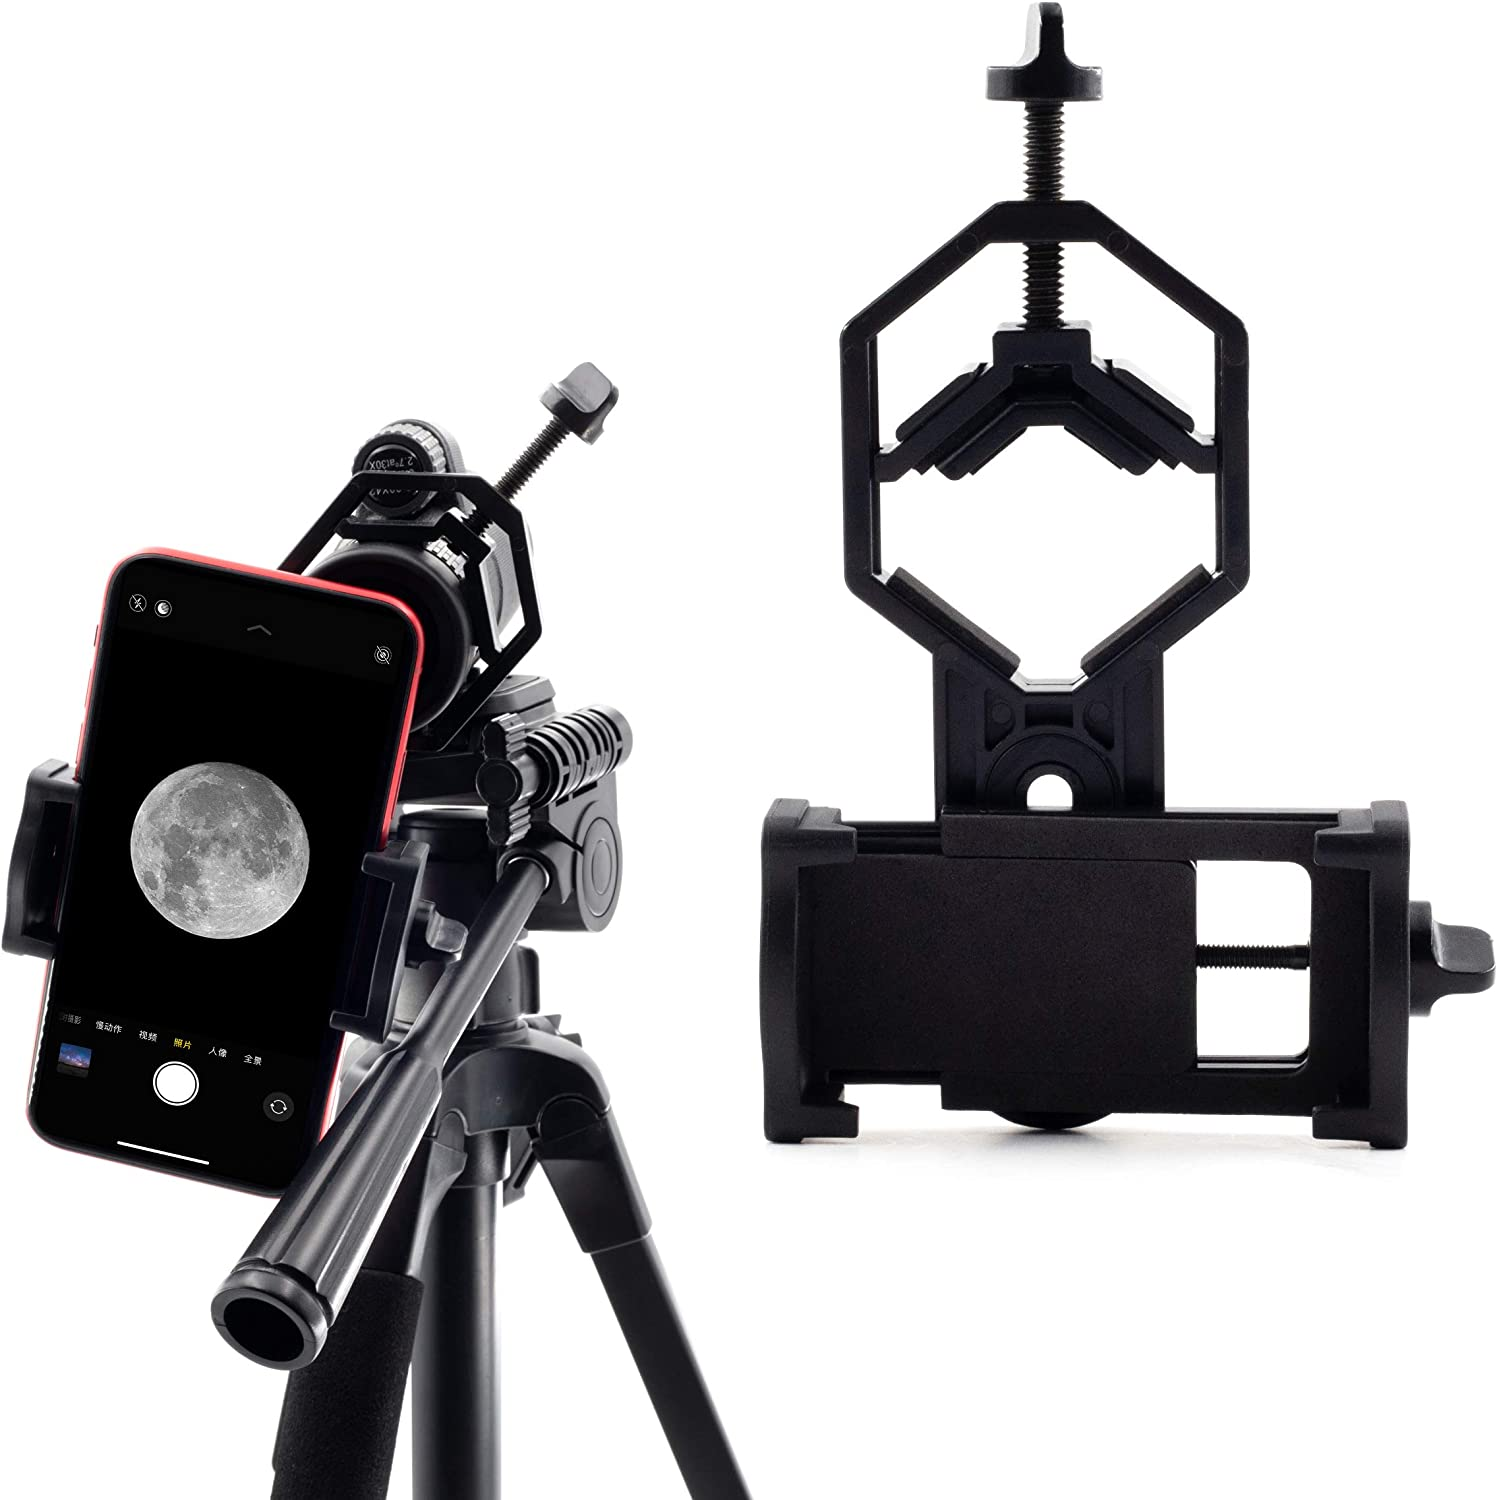 Basic Smartphone Max 47% OFF Adapter Universal Cell Mount Phone Ranking TOP12 for